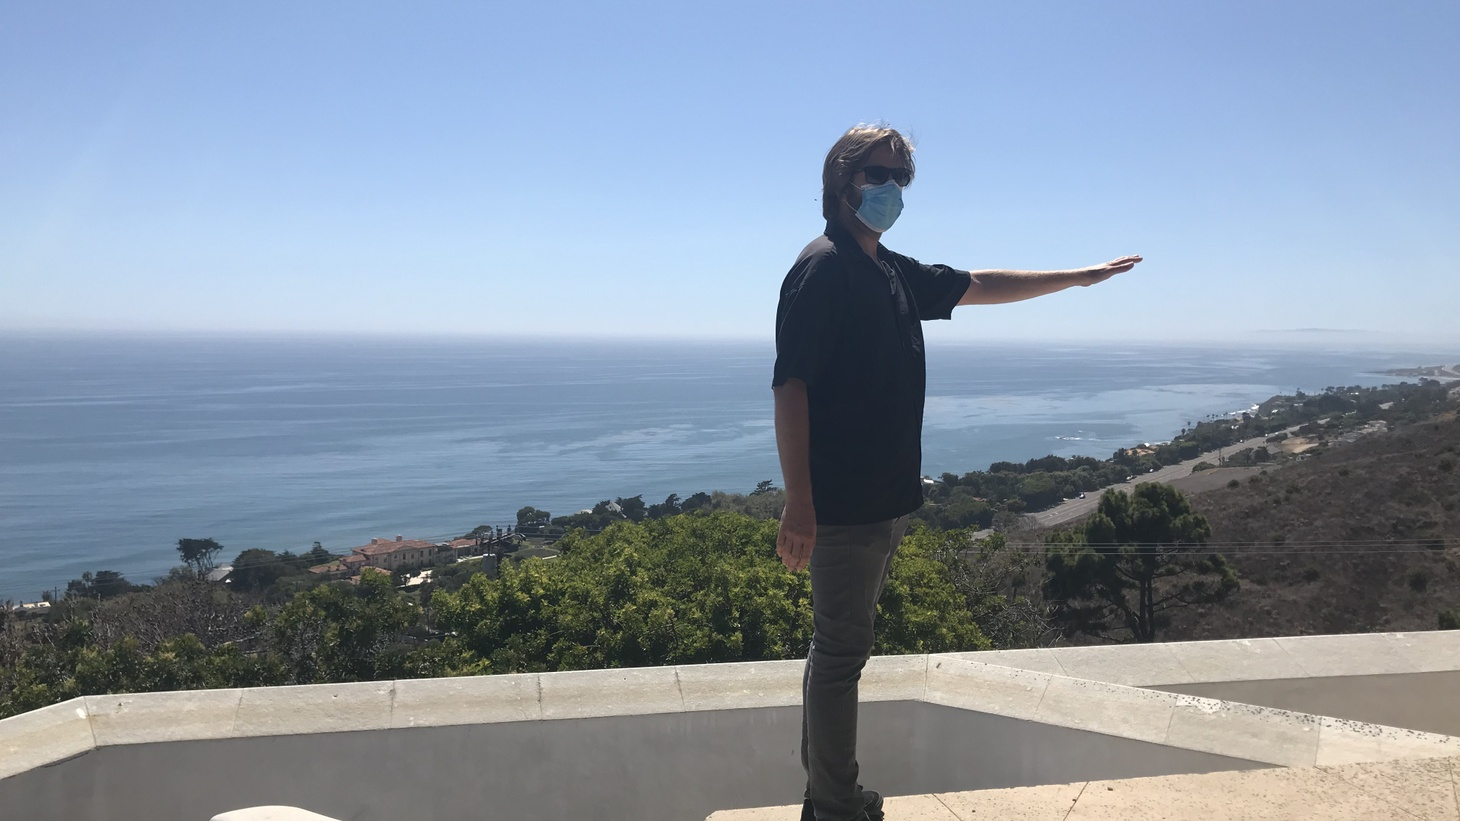 Geoffrey von Oeyen surveys the view from Horizon House in Malibu, as he rebuilds two years after the Woolsey Fire destroyed the first house.